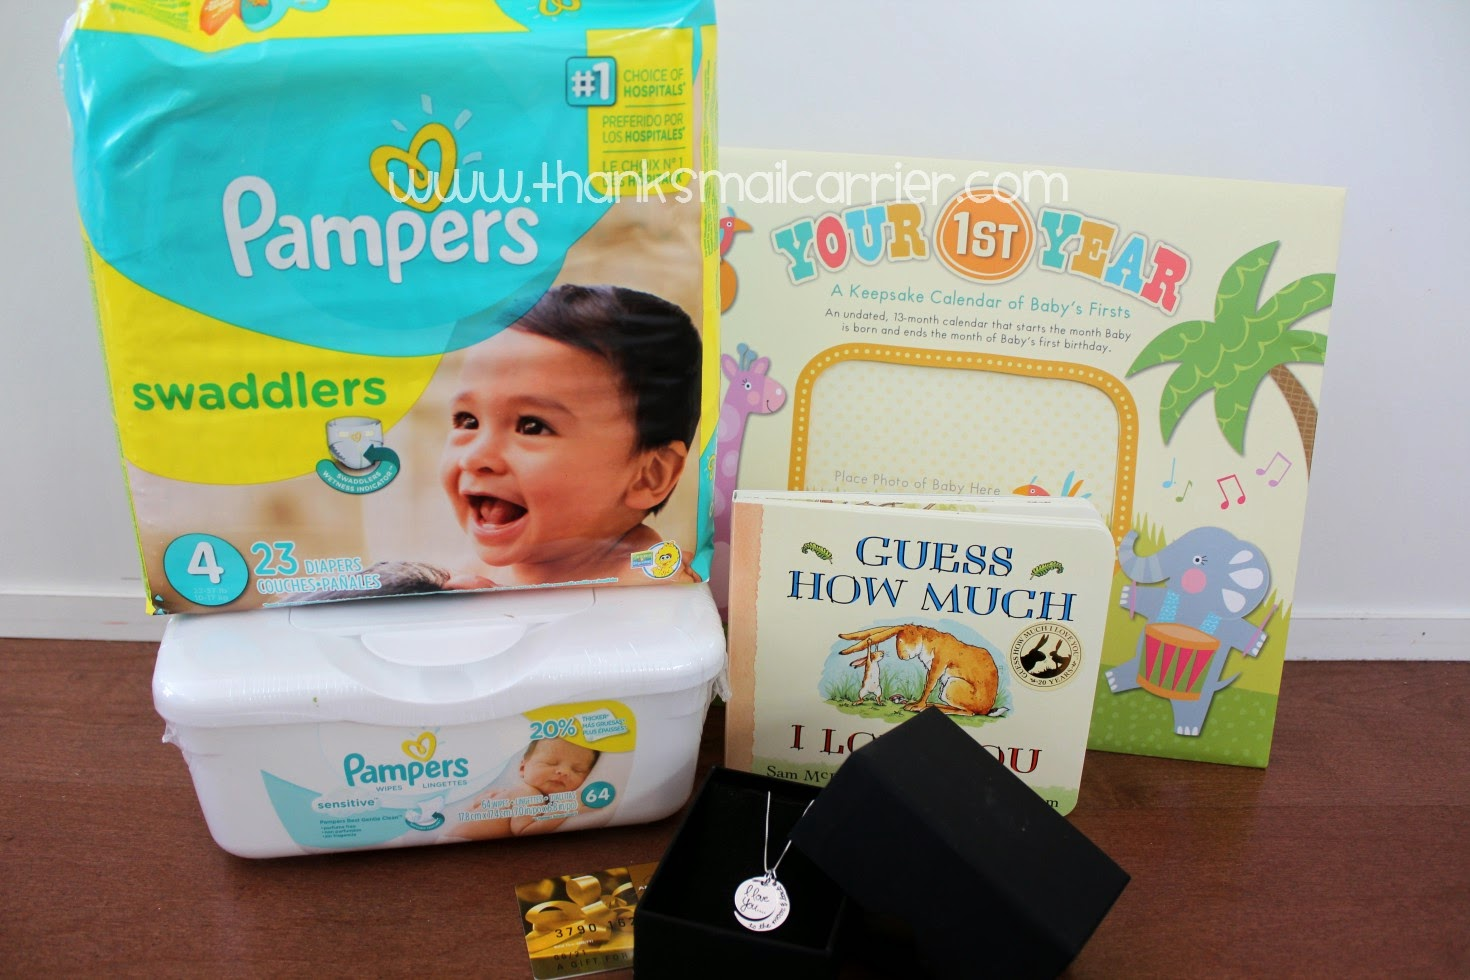 Pampers prize pack